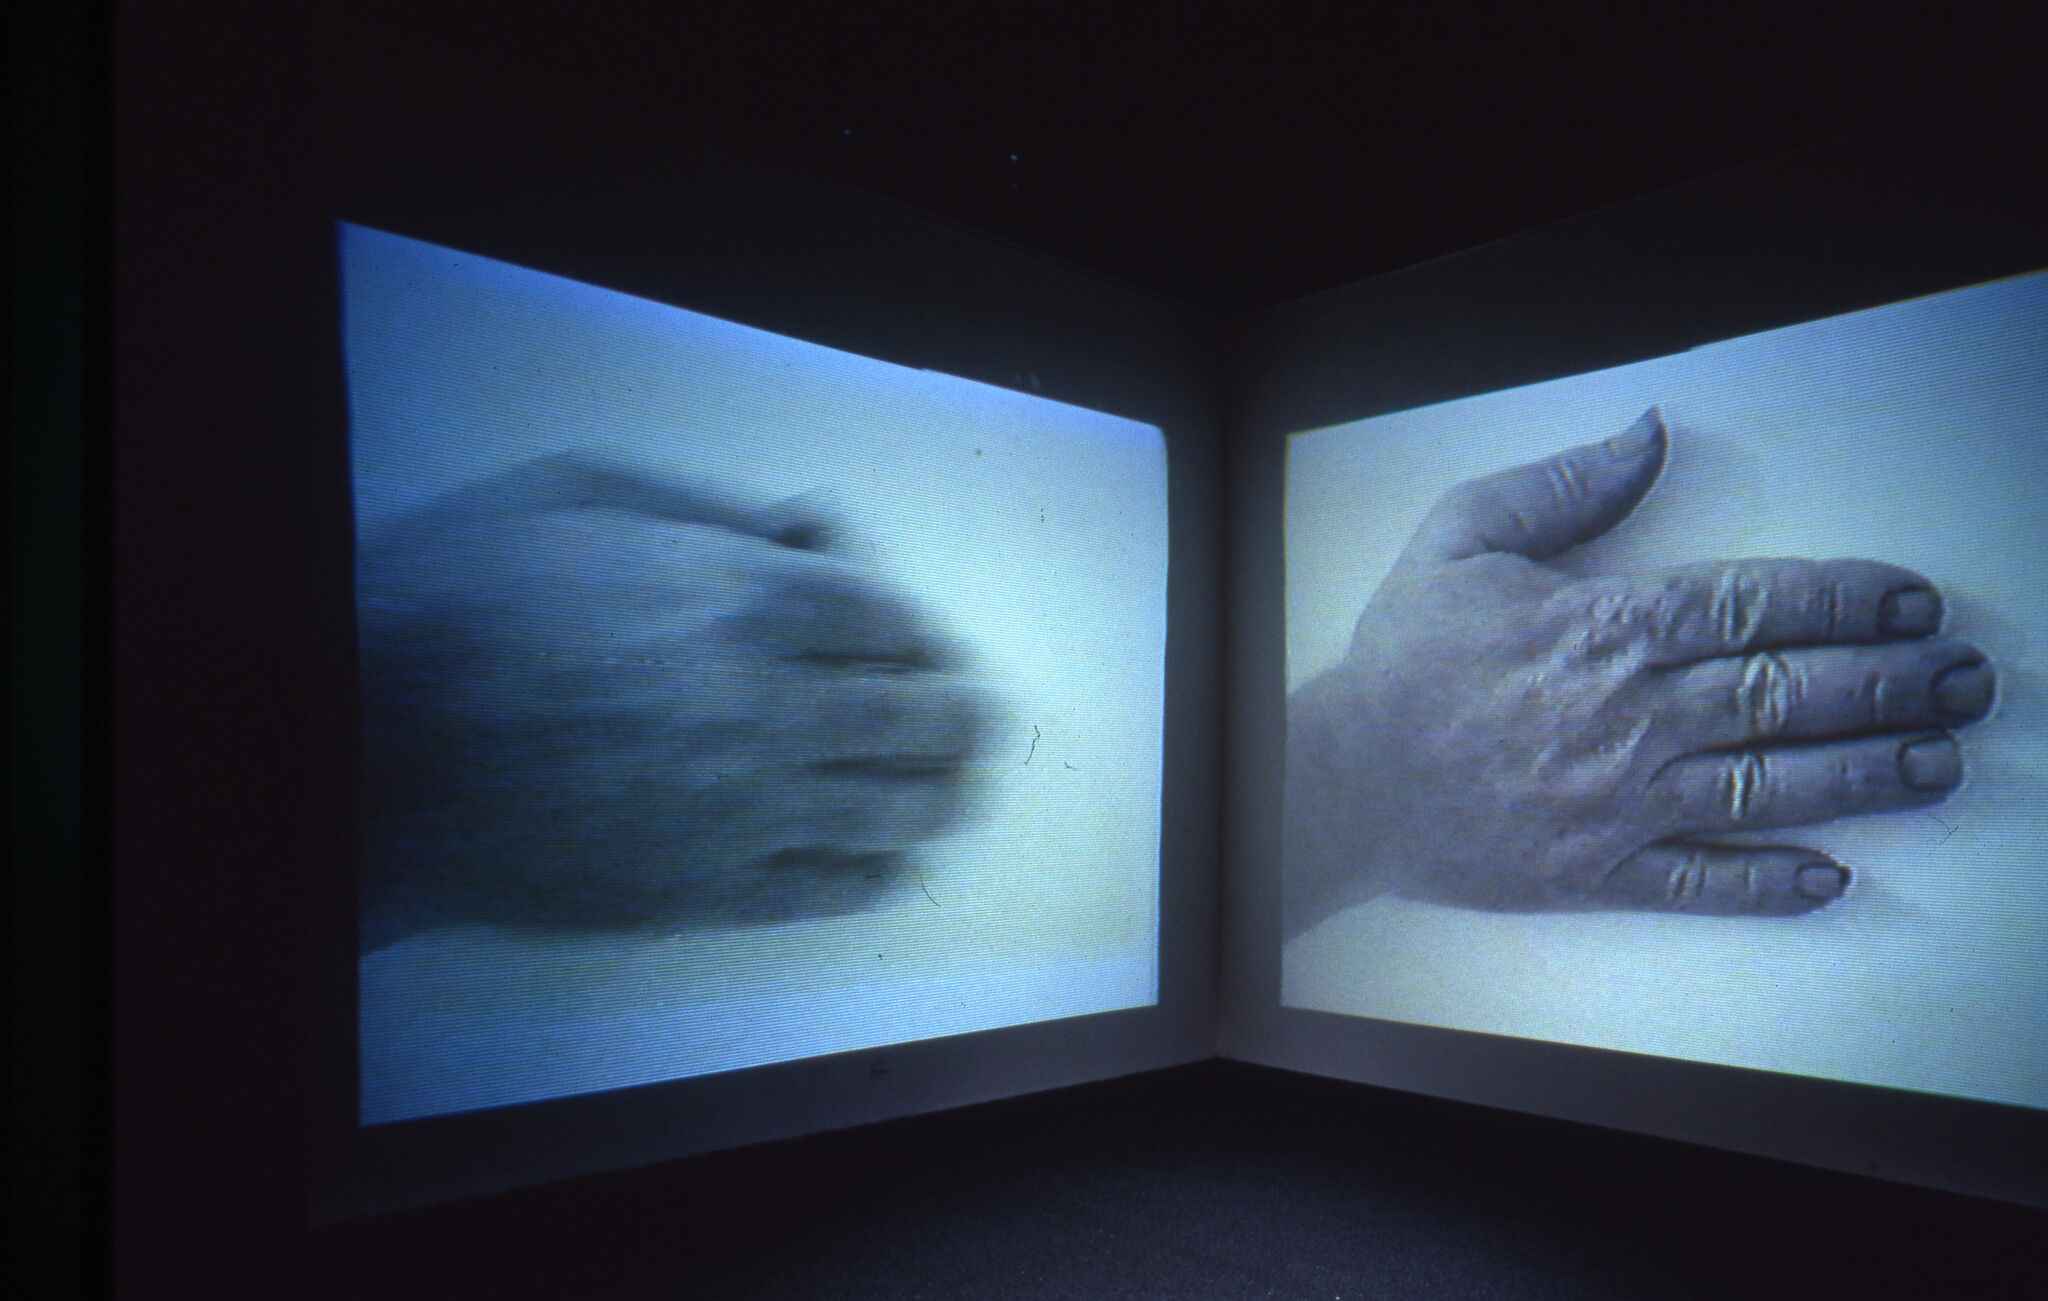 Two projected blue-hued images of a hand.